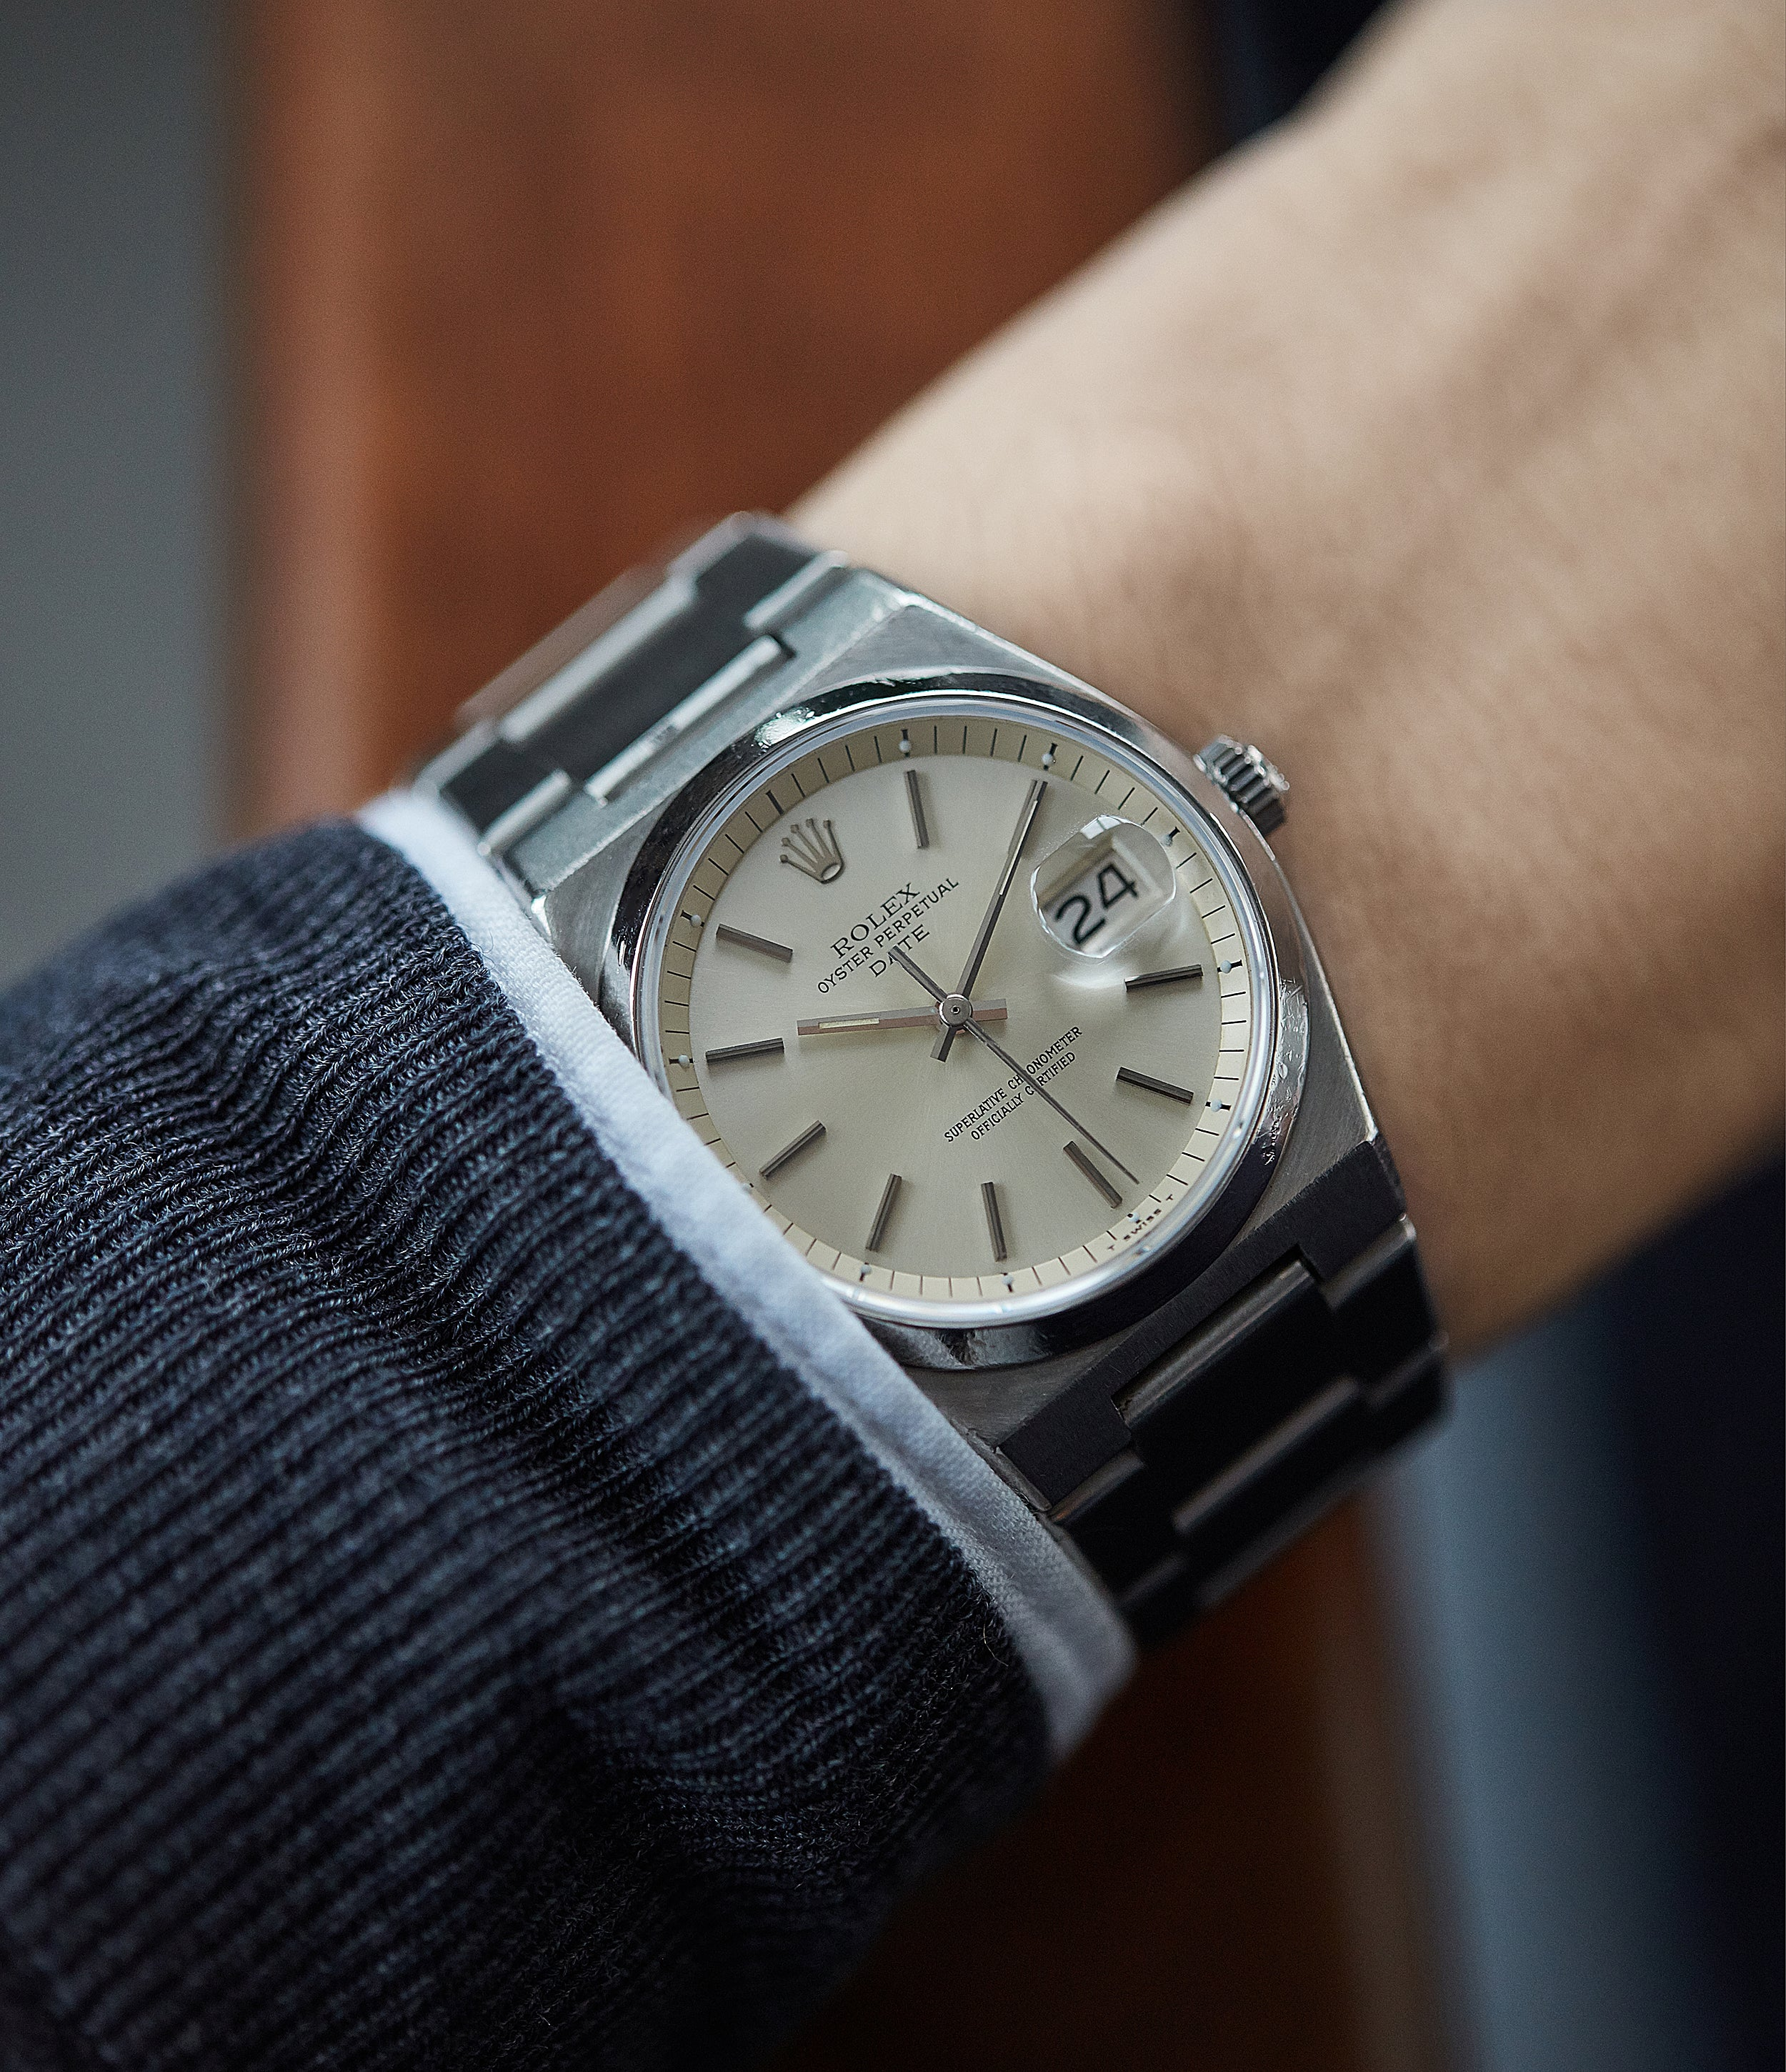 on the wrist Rolex Oyster Perpetual 1530 steel sport watch with papers for sale online at A Collected Man London UK specialist of rare watches